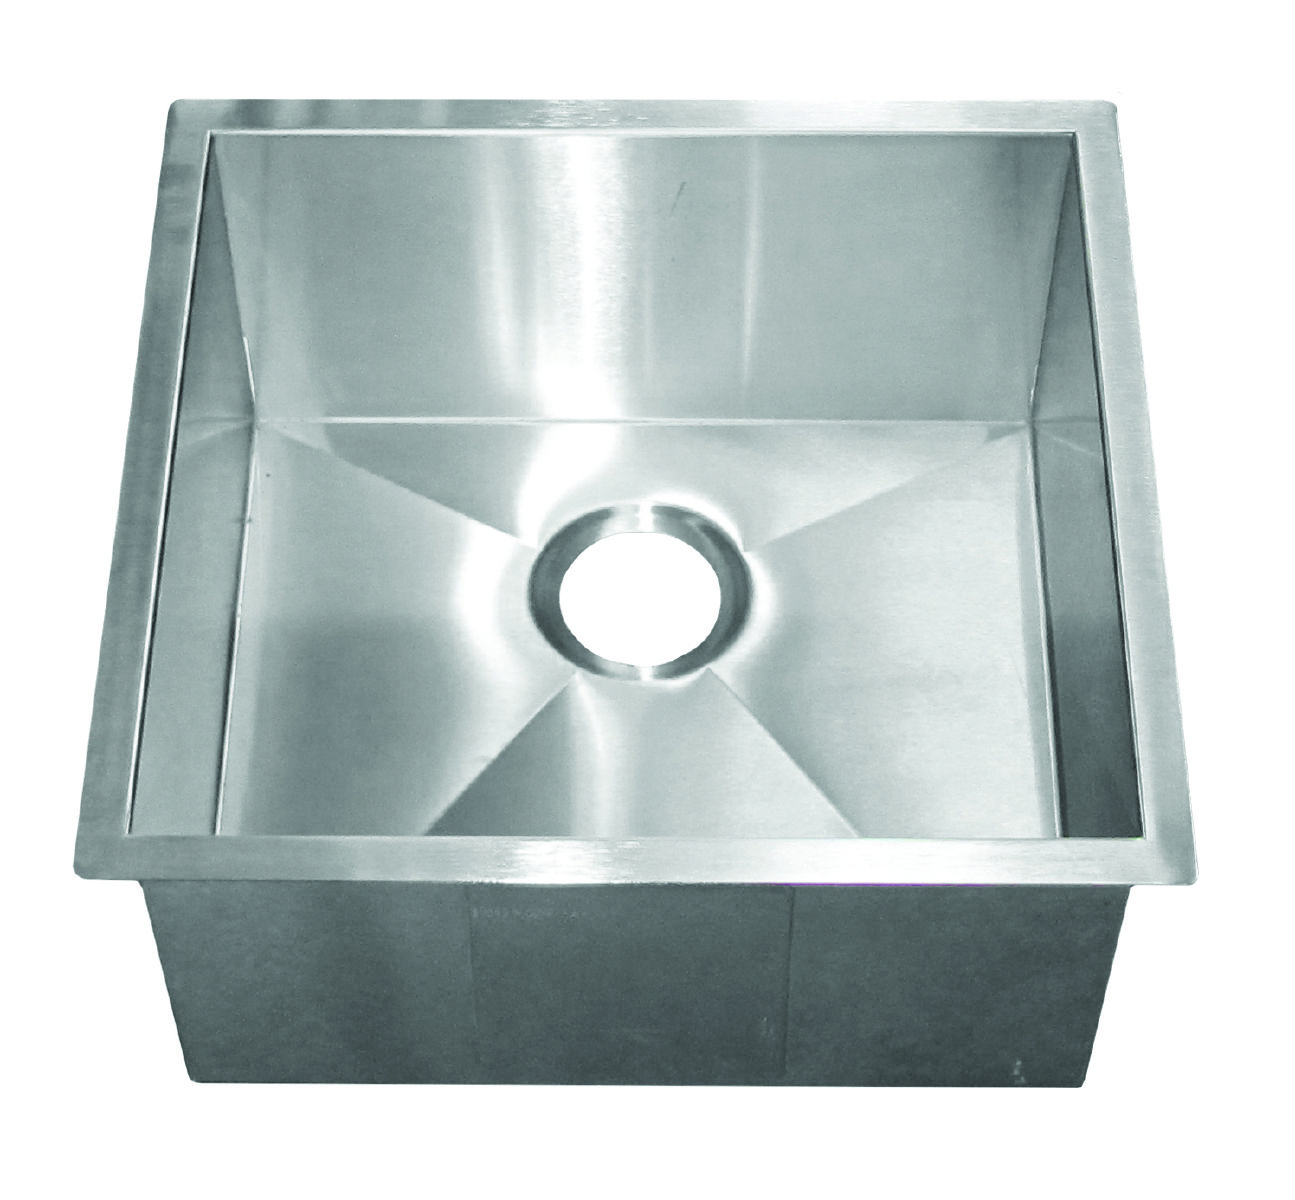 Stainless steel sinks 2321S 90